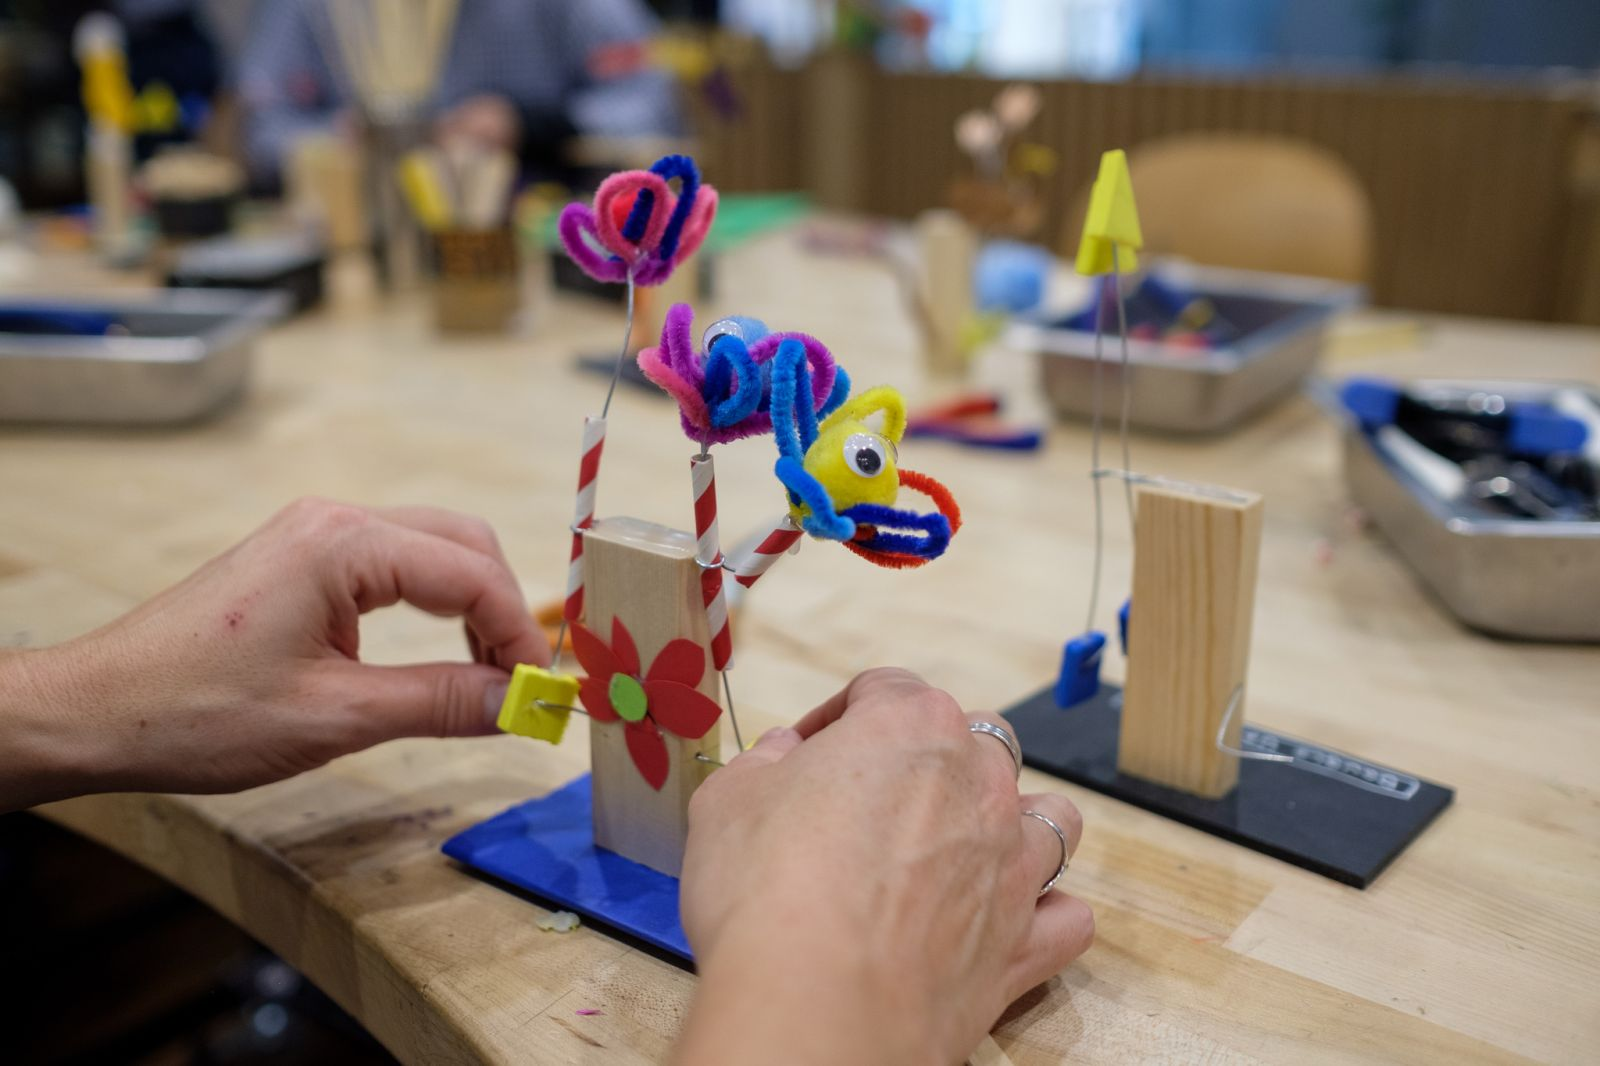 A flowers automaton made with pipe cleaners